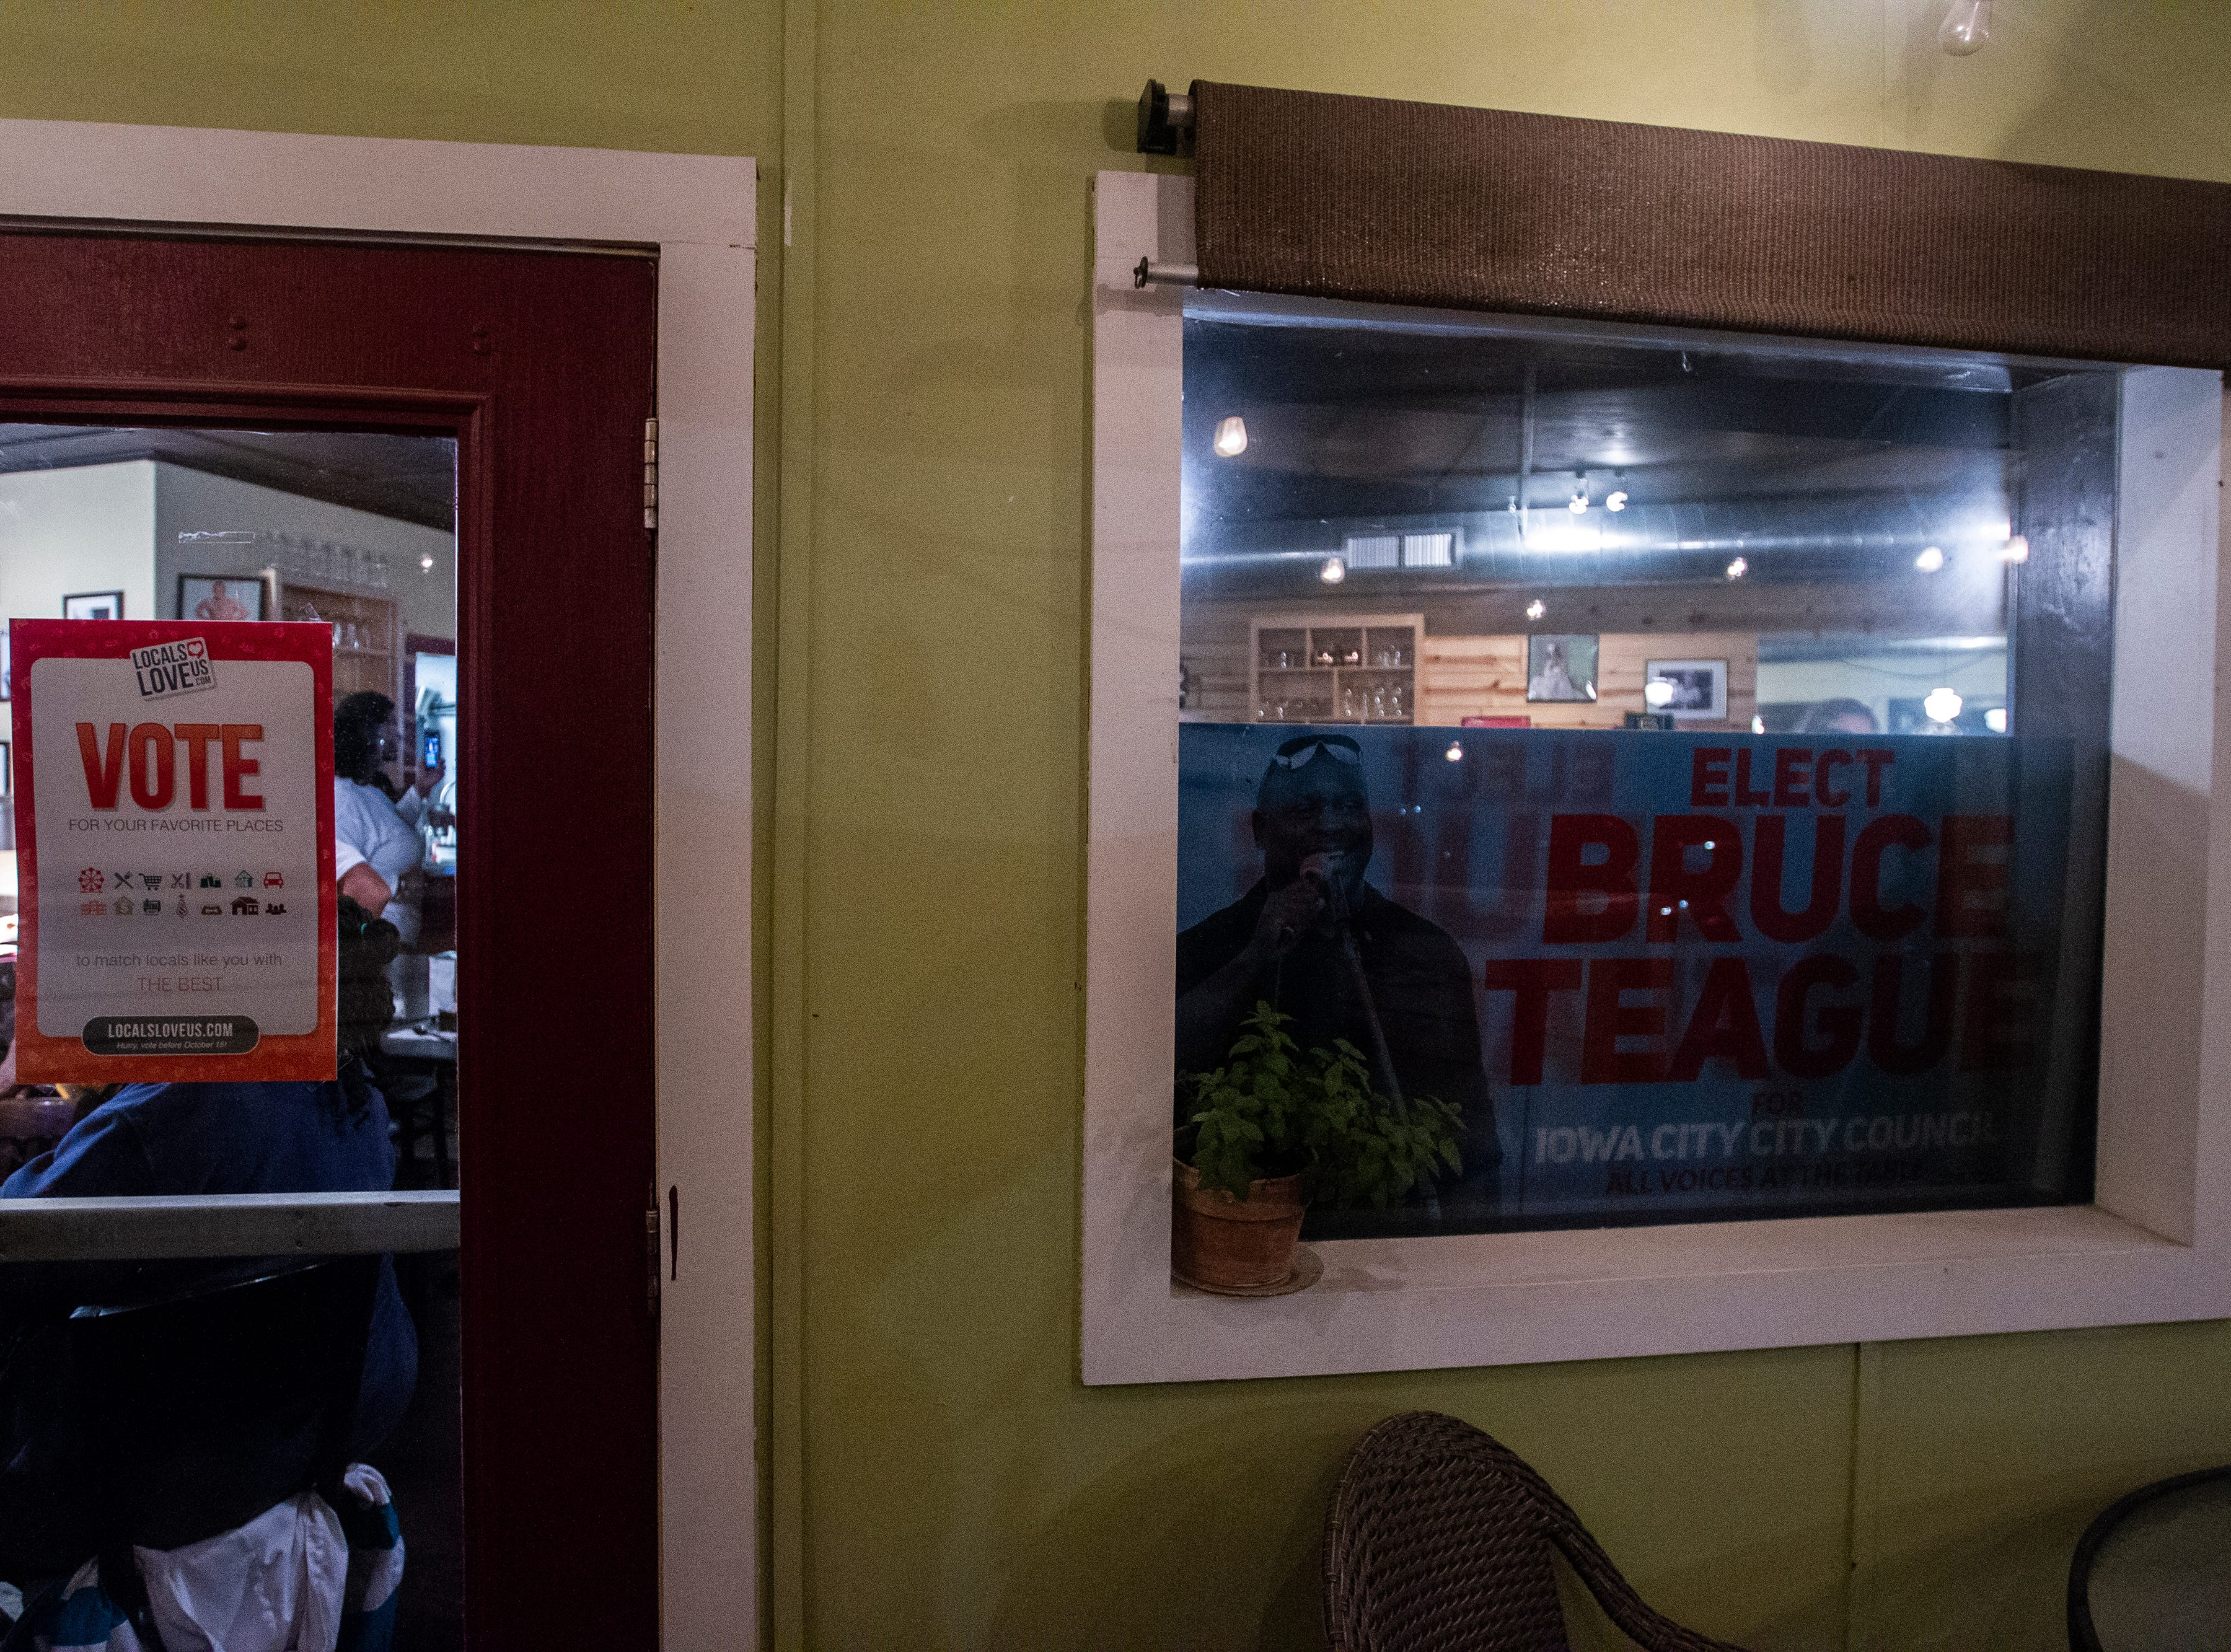 Bruce Teague posters line windows during a watch party with supporters on Tuesday, Oct. 2, 2018, at Billy's High Hat Diner on Iowa Avenue in Iowa City.